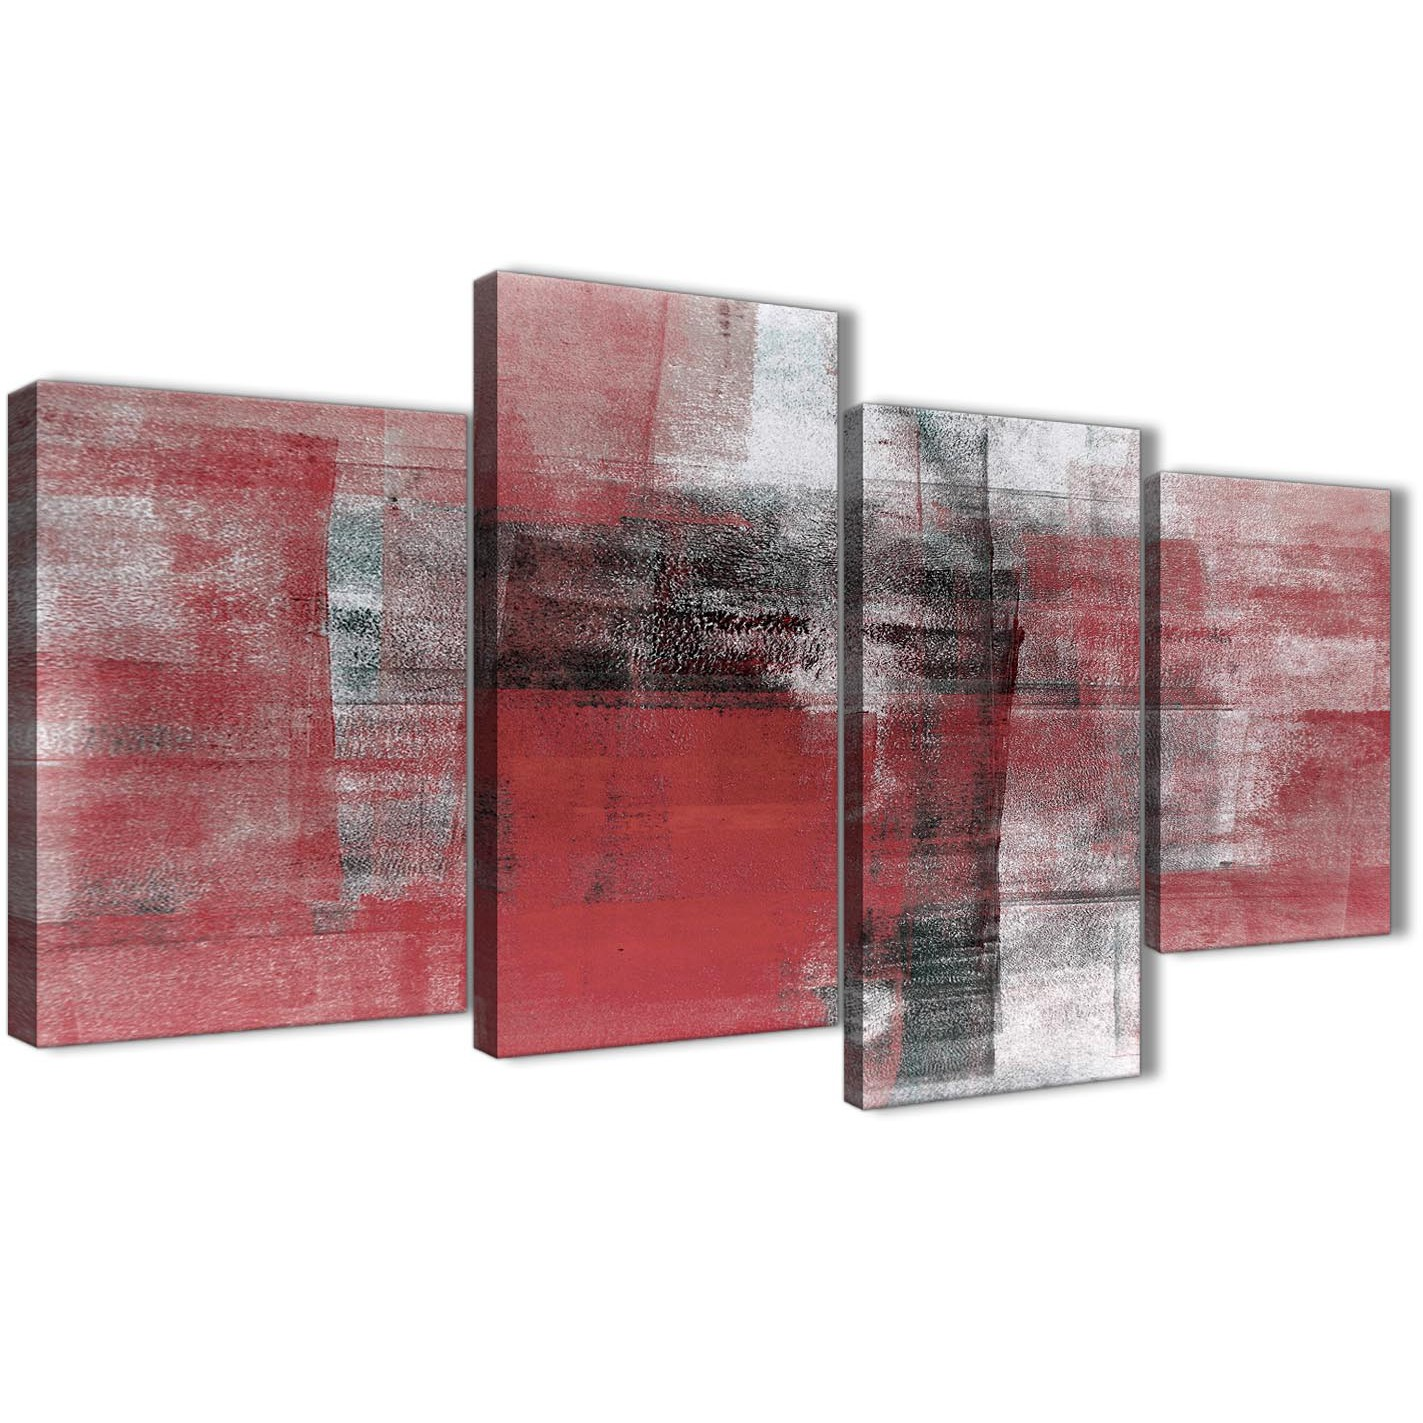 Large red black white painting abstract bedroom canvas pictures decor 4397 130cm set of prints